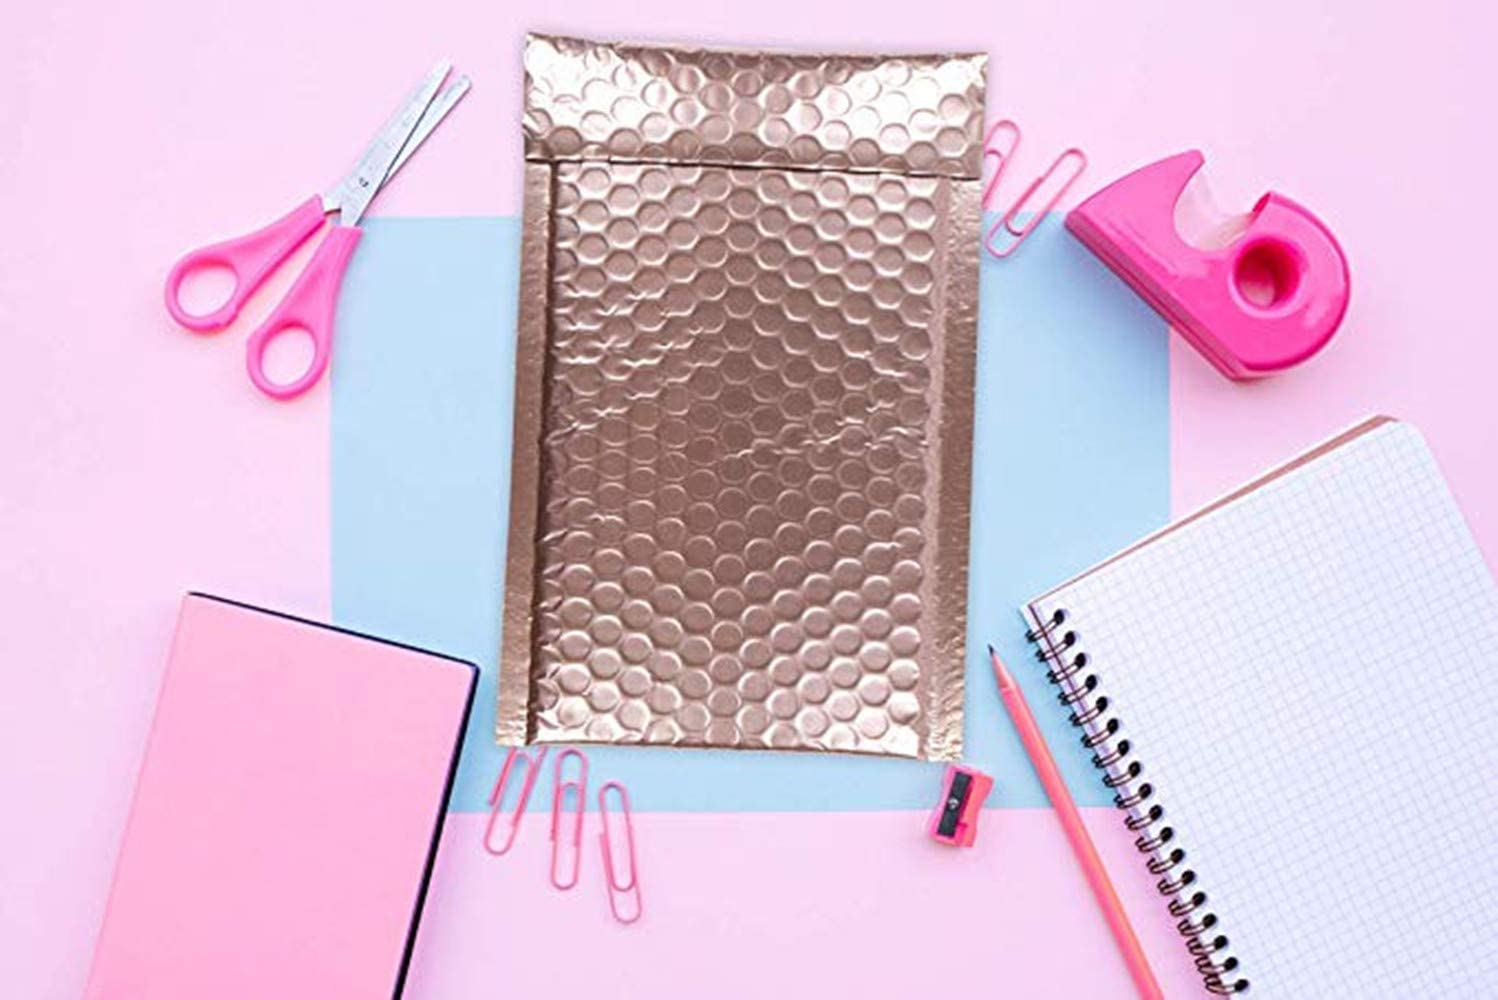 9 Peal and Seal Self-adhesive shipping bags for mailing packing packaging Wholesale price 20 Pack ANNIUP Rose Gold Bubble envelopes mailers Metallic padded envelopes 6